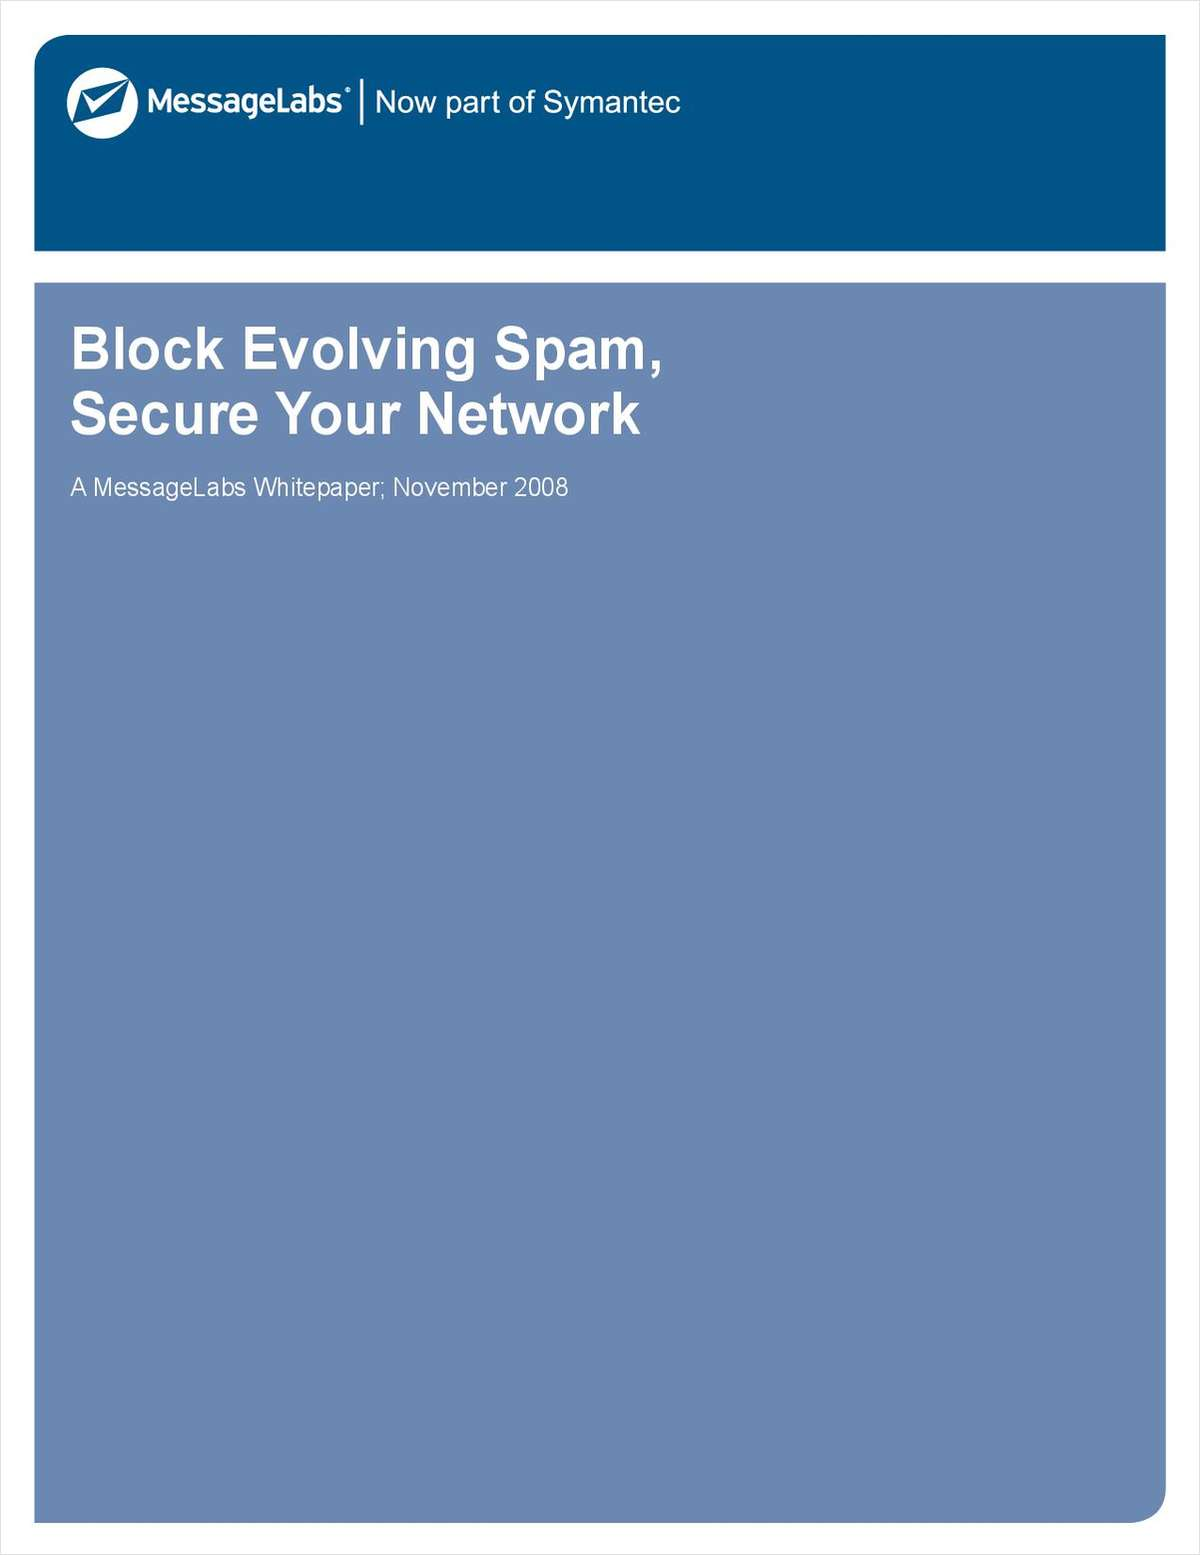 Block Evolving Spam, Secure Your Network